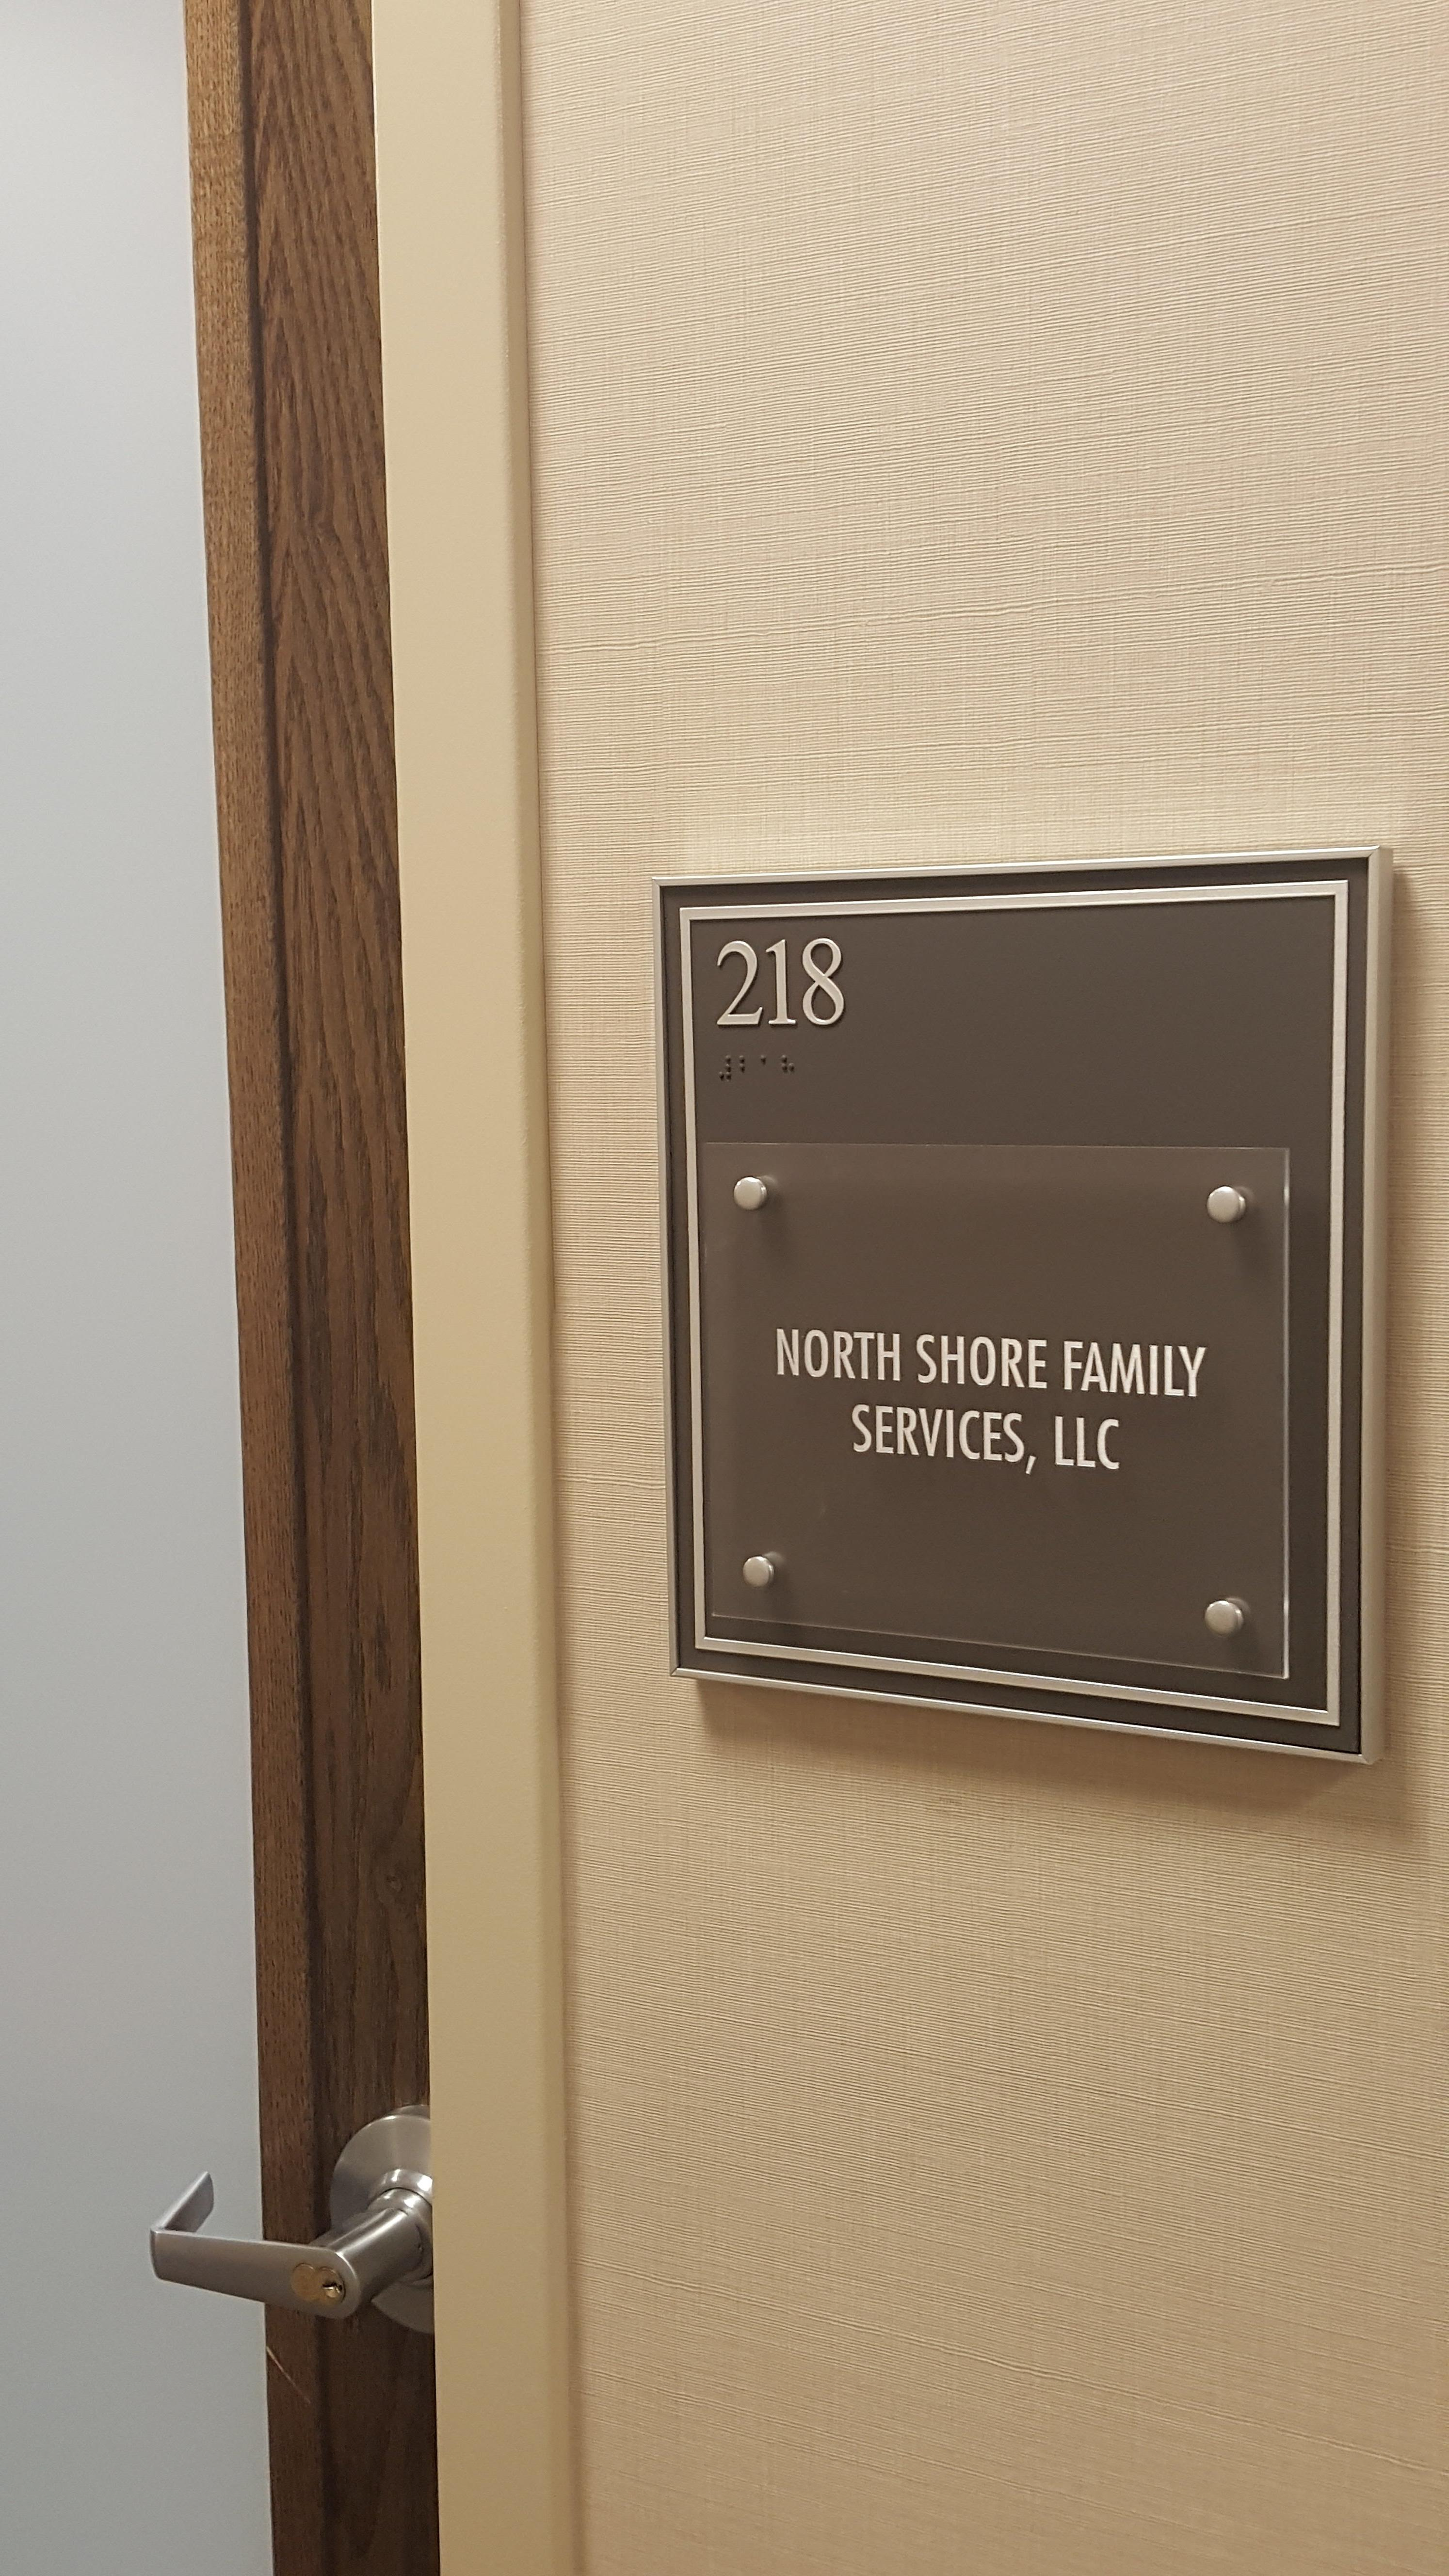 North Shore Family Services, LLC image 6